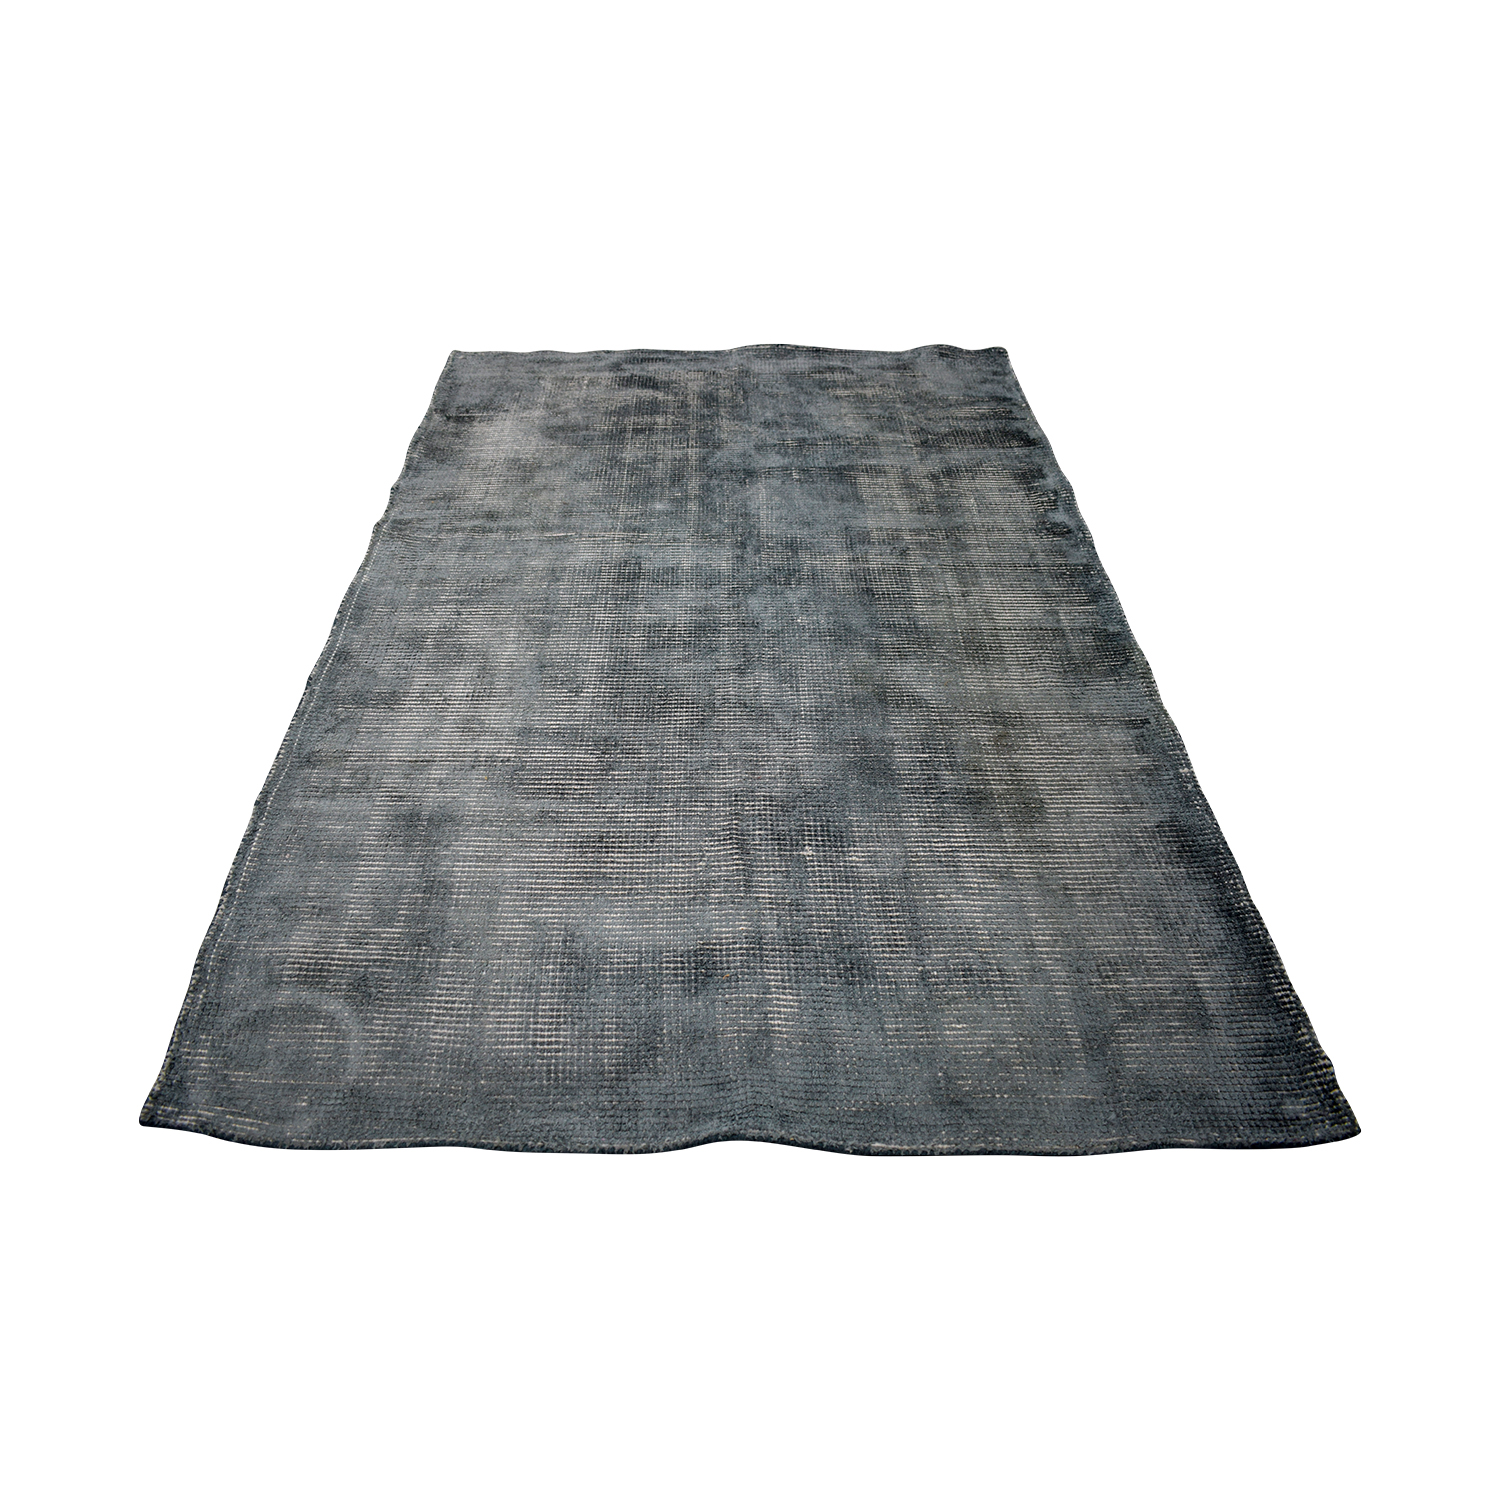 CB2 CB2 New Zealand Wool Scatter Grey Rug dimensions